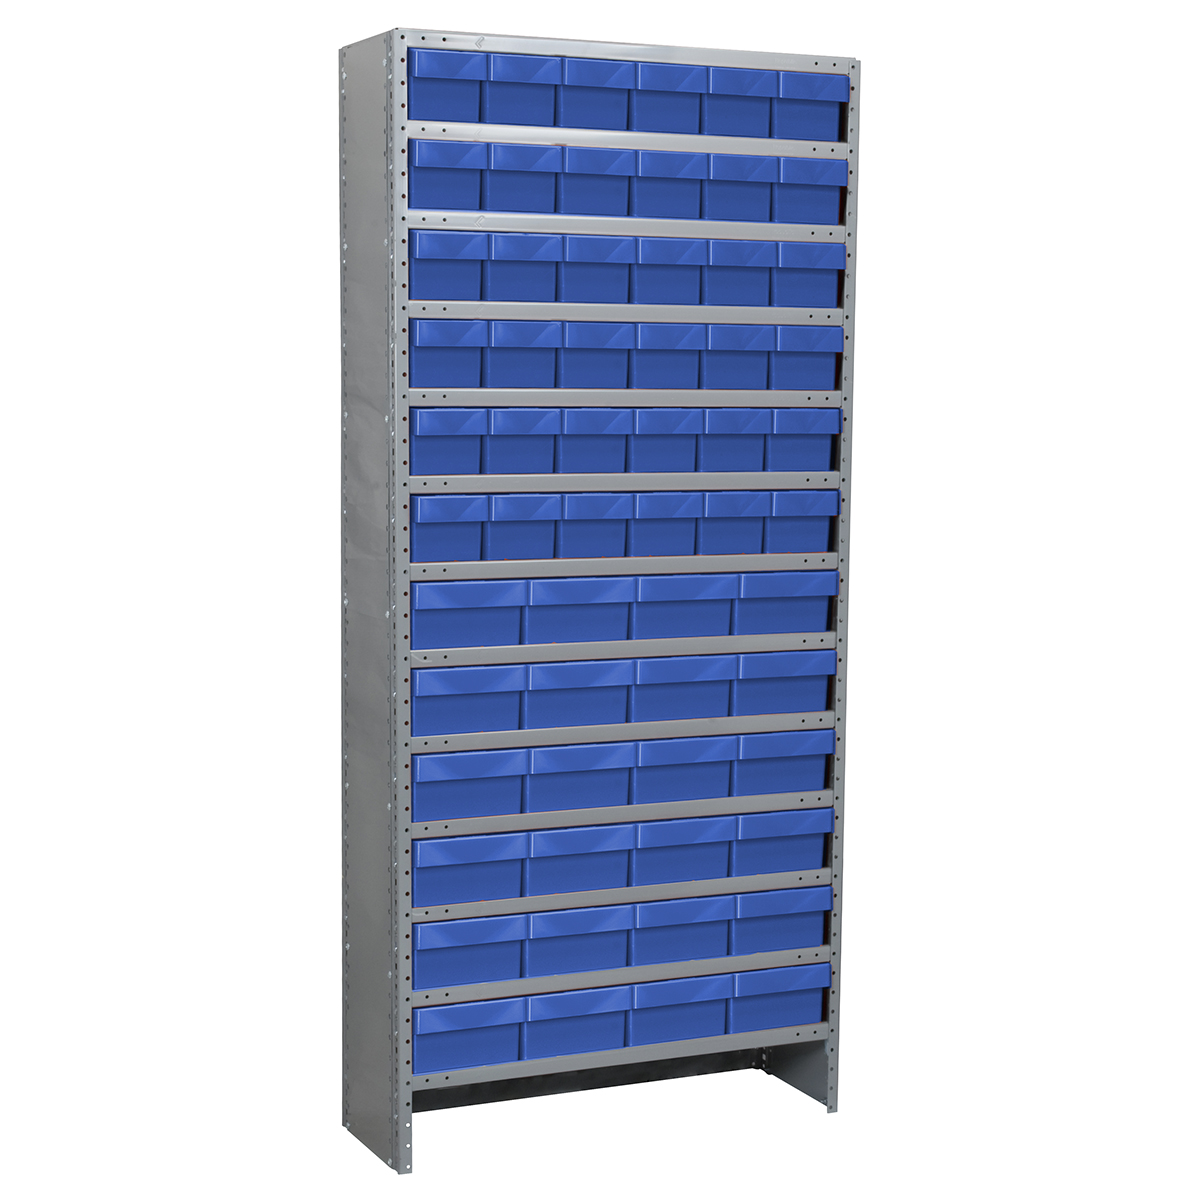 Enclosed Steel Shelving Kit, 18x36x79, 60 AkroDrawers, Gray/Blue.  This item sold in carton quantities of 1.